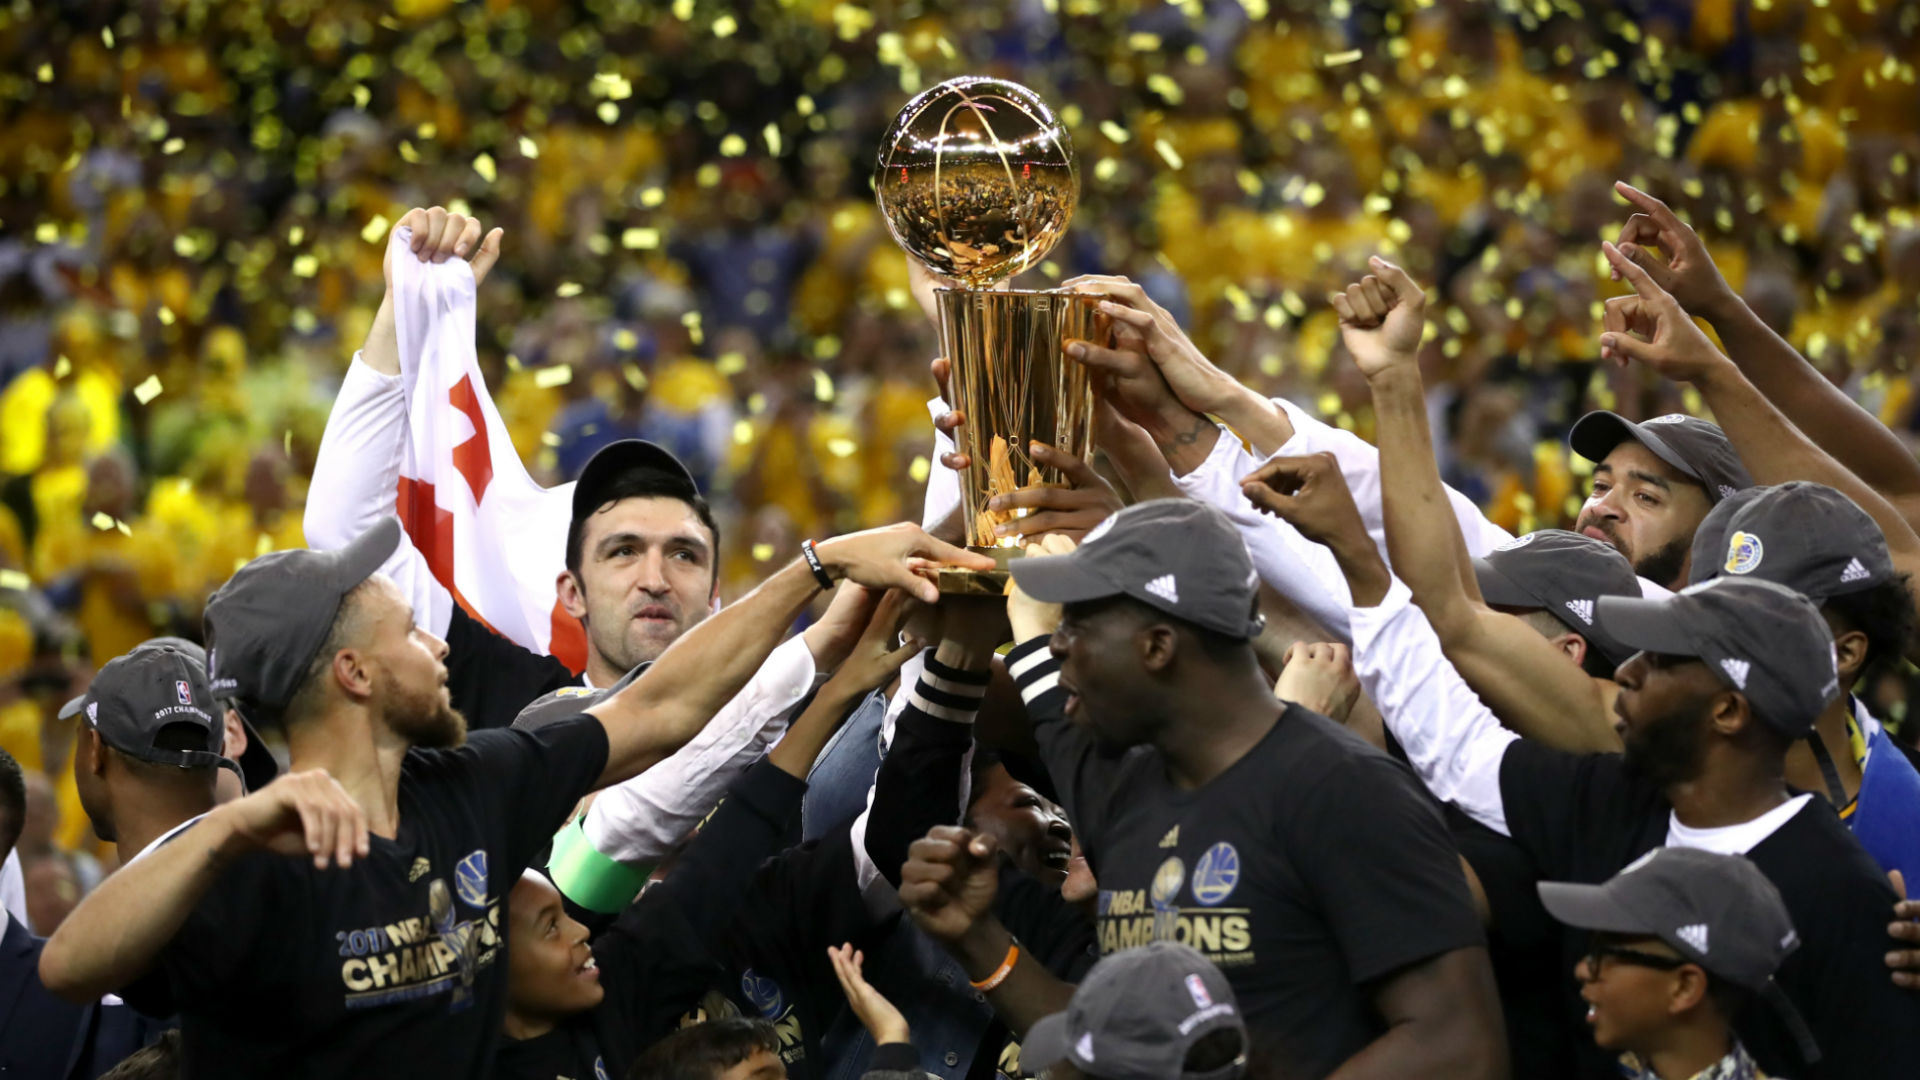 Warriors beat Cavs 129-120 to win National Basketball Association  title